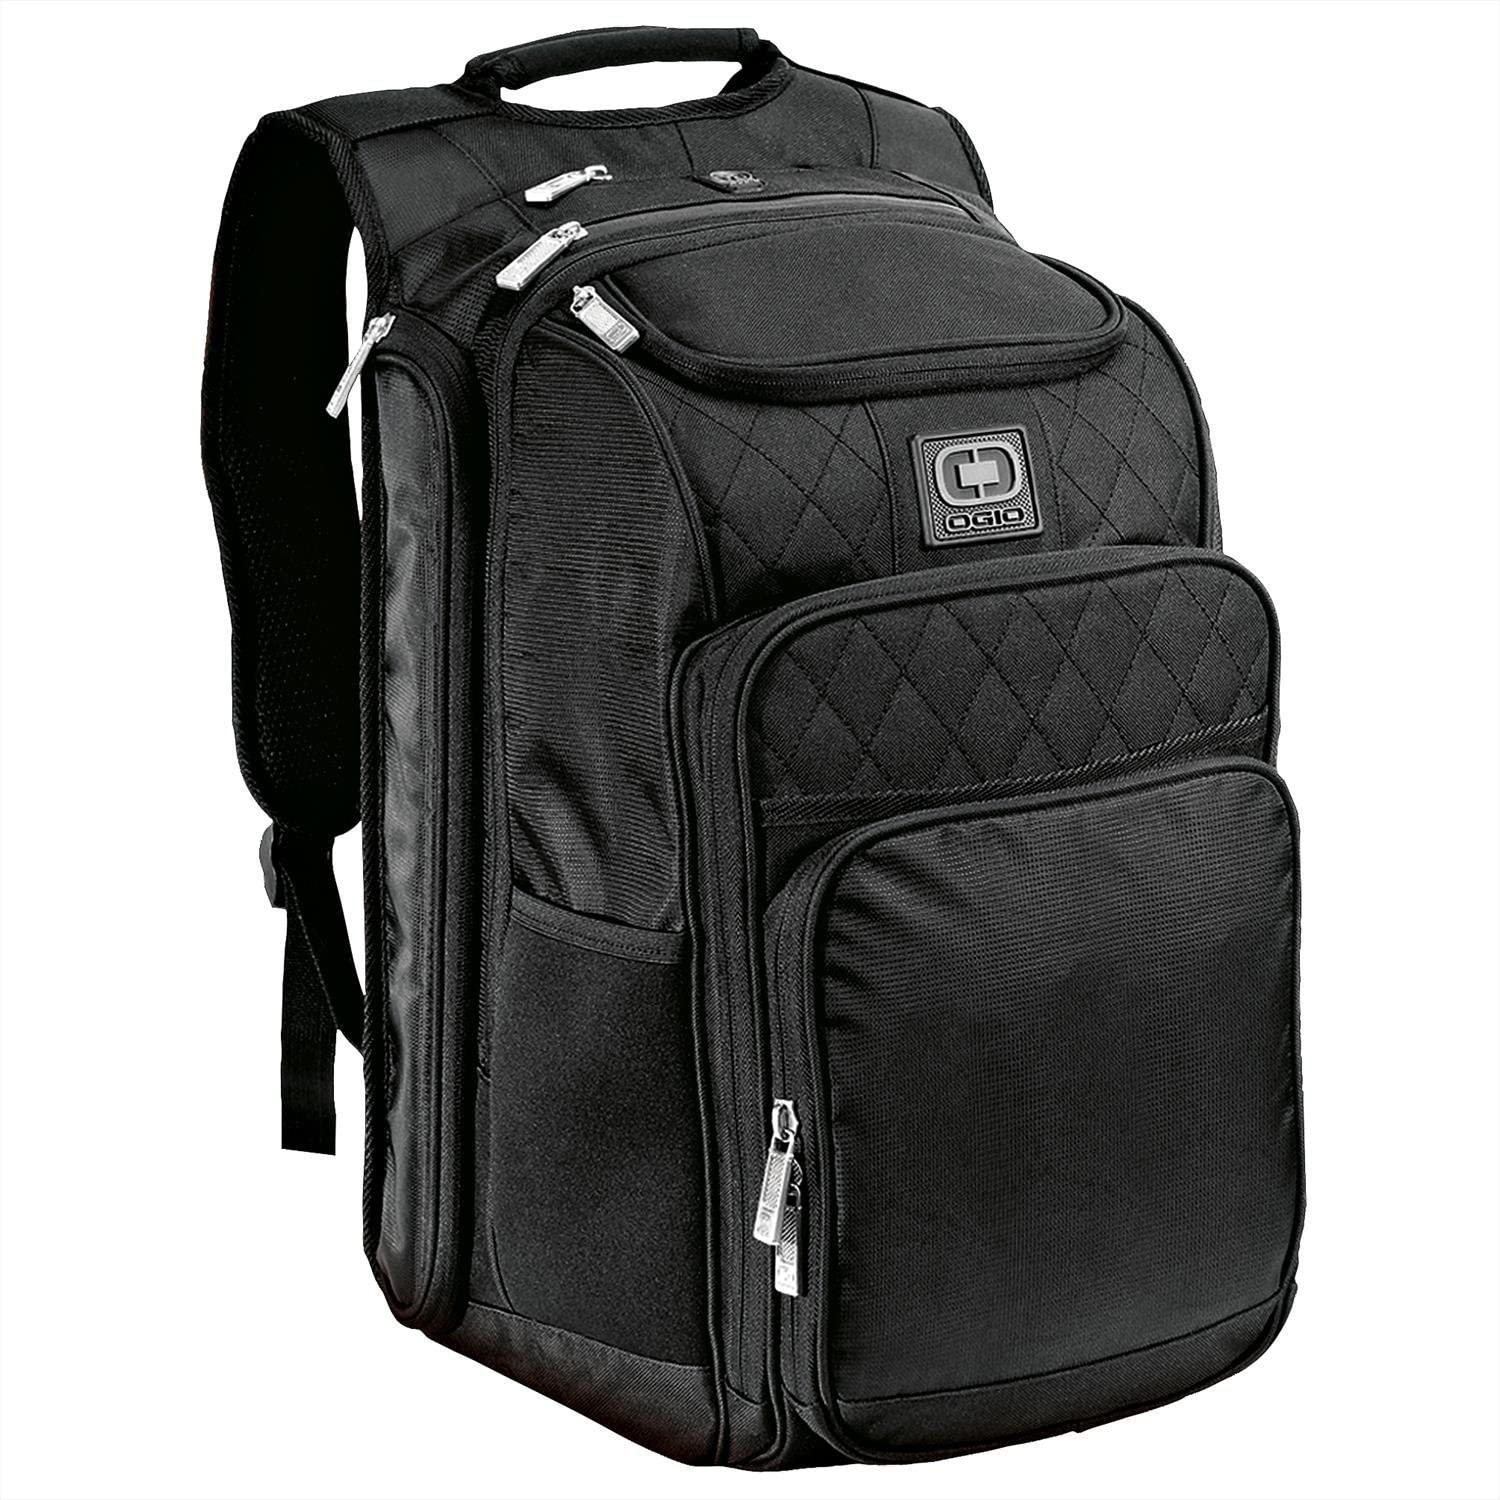 "OGIO Epic Backpack with 17"" Computer Laptop Sleeve - Black"